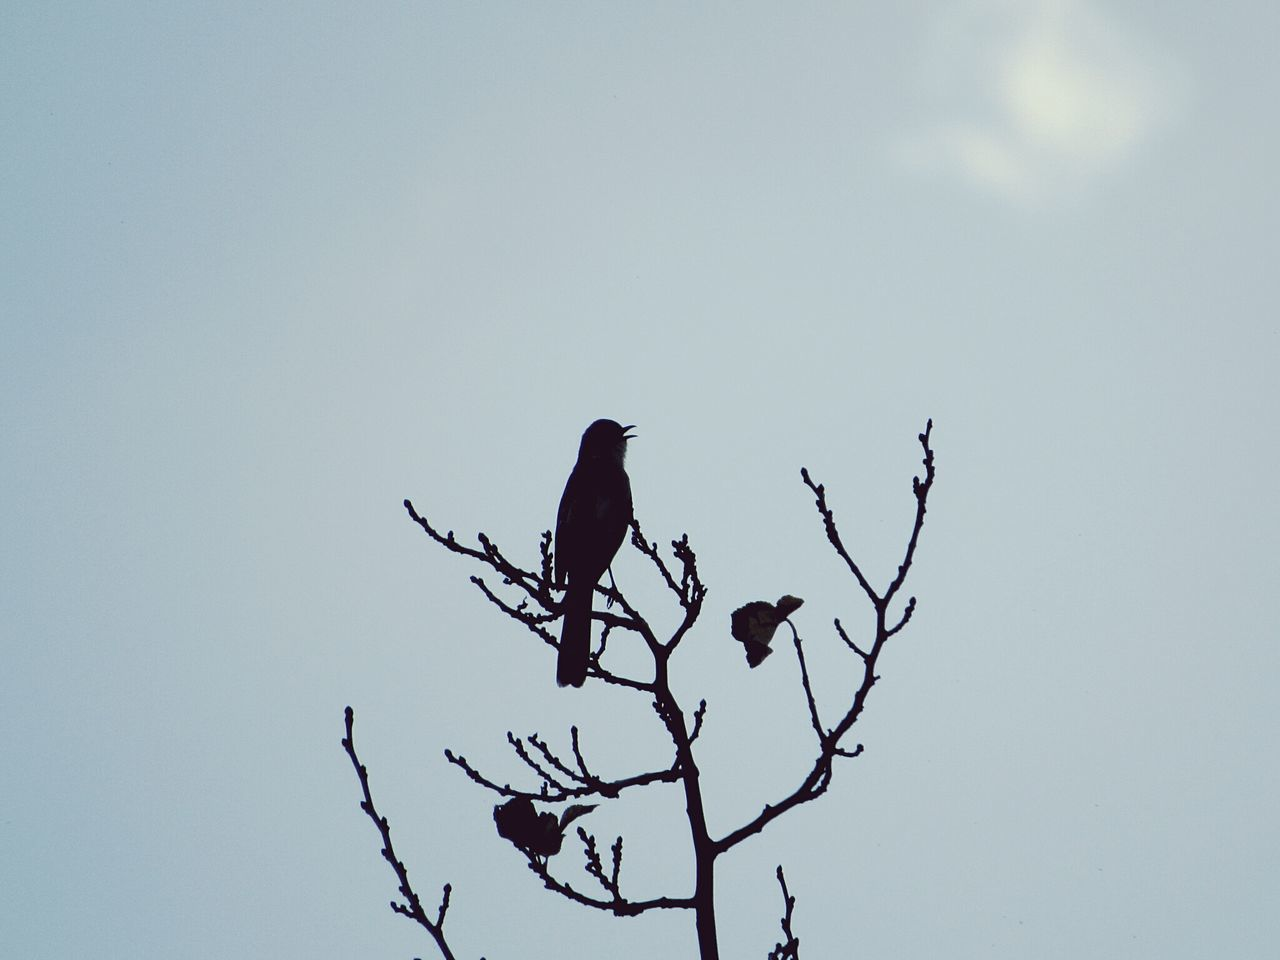 animals in the wild, bird, perching, low angle view, animal themes, animal wildlife, clear sky, nature, copy space, branch, one animal, day, no people, bare tree, outdoors, beauty in nature, tree, sky, bird of prey